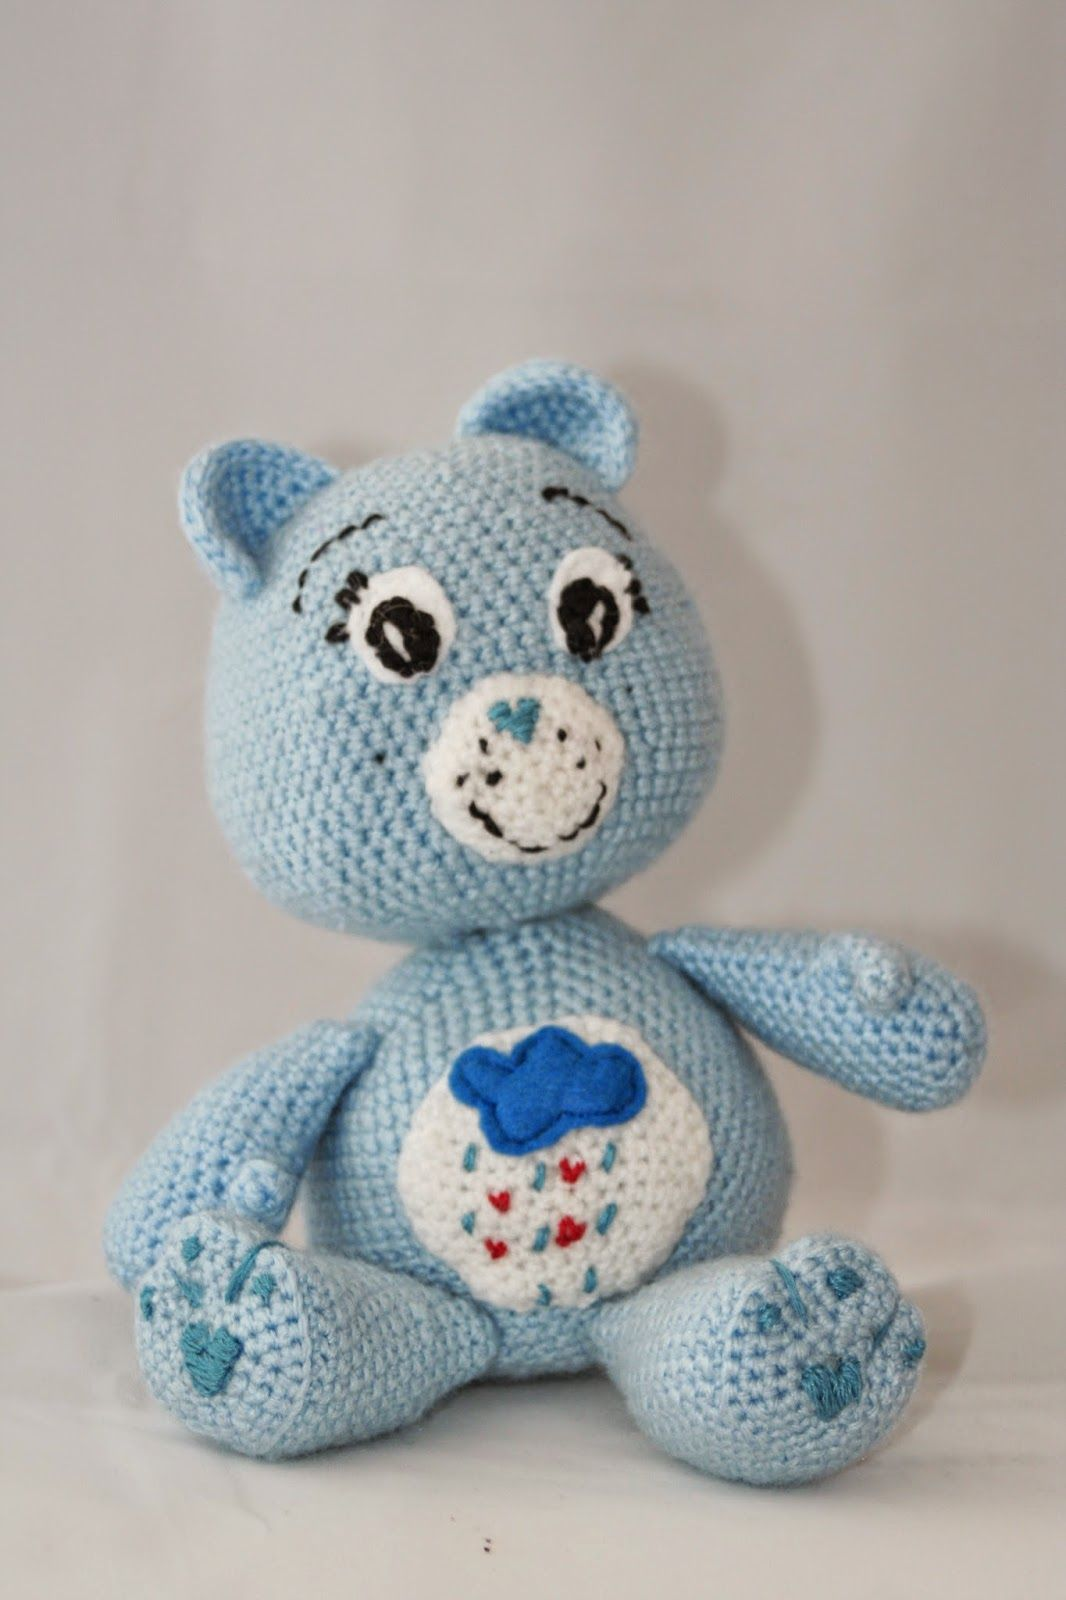 Care bears crochet pattern abbreviations blo back loops only care bears crochet pattern abbreviations blo back loops only mc main color mr bankloansurffo Choice Image